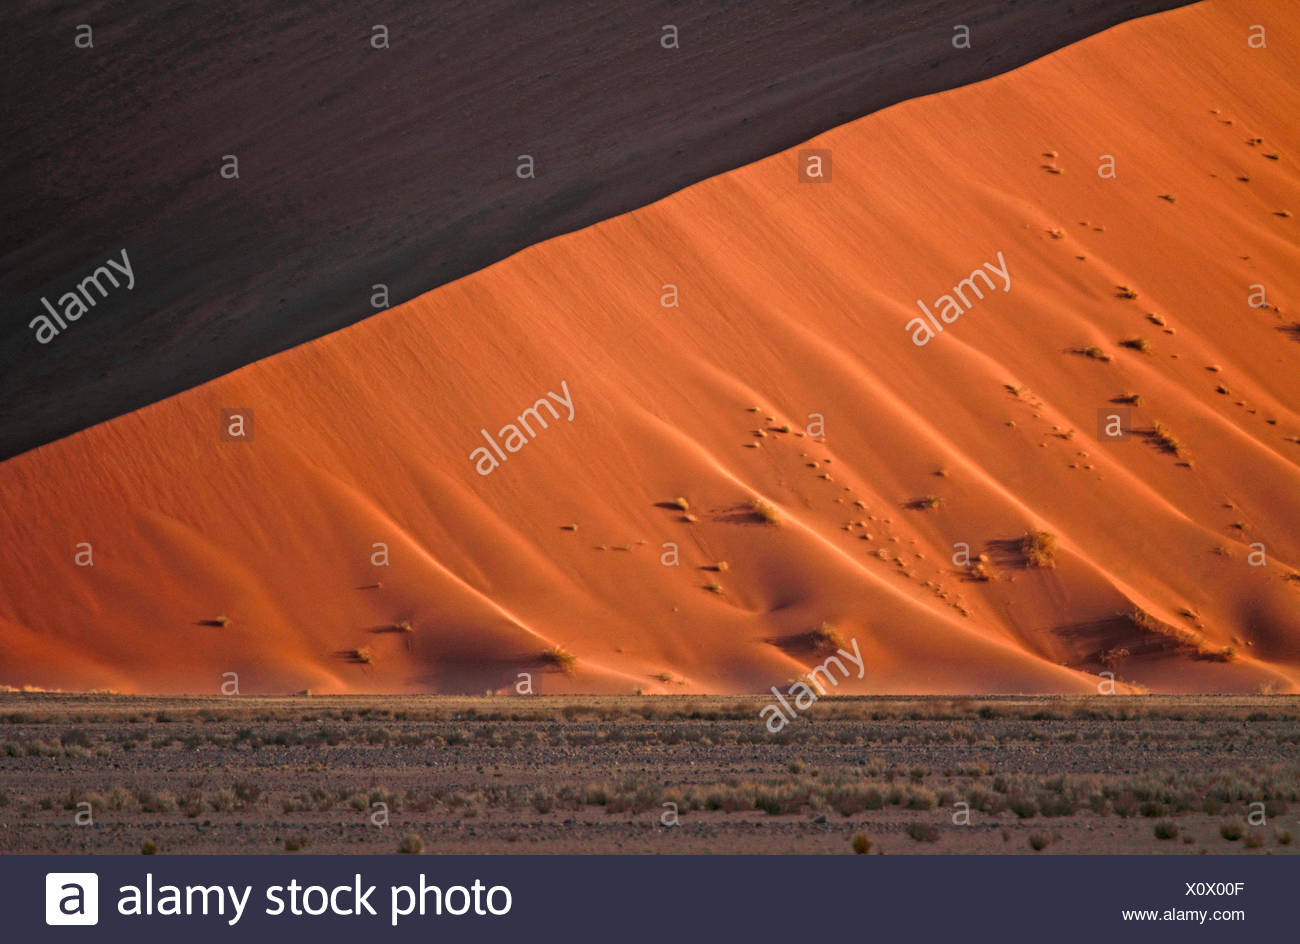 Dune de sable du désert du namib, Namibie, le Parc National Namib Naukluft Sossusvlei, Photo Stock